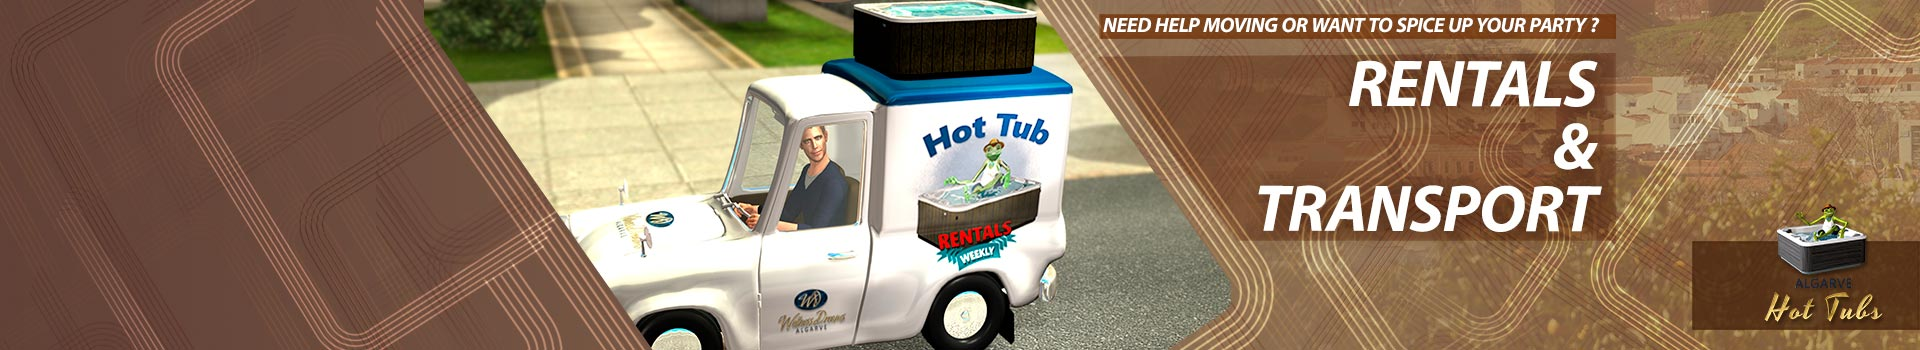 Hottubs - Rentals & Transport - Wellness Dreams Algarve